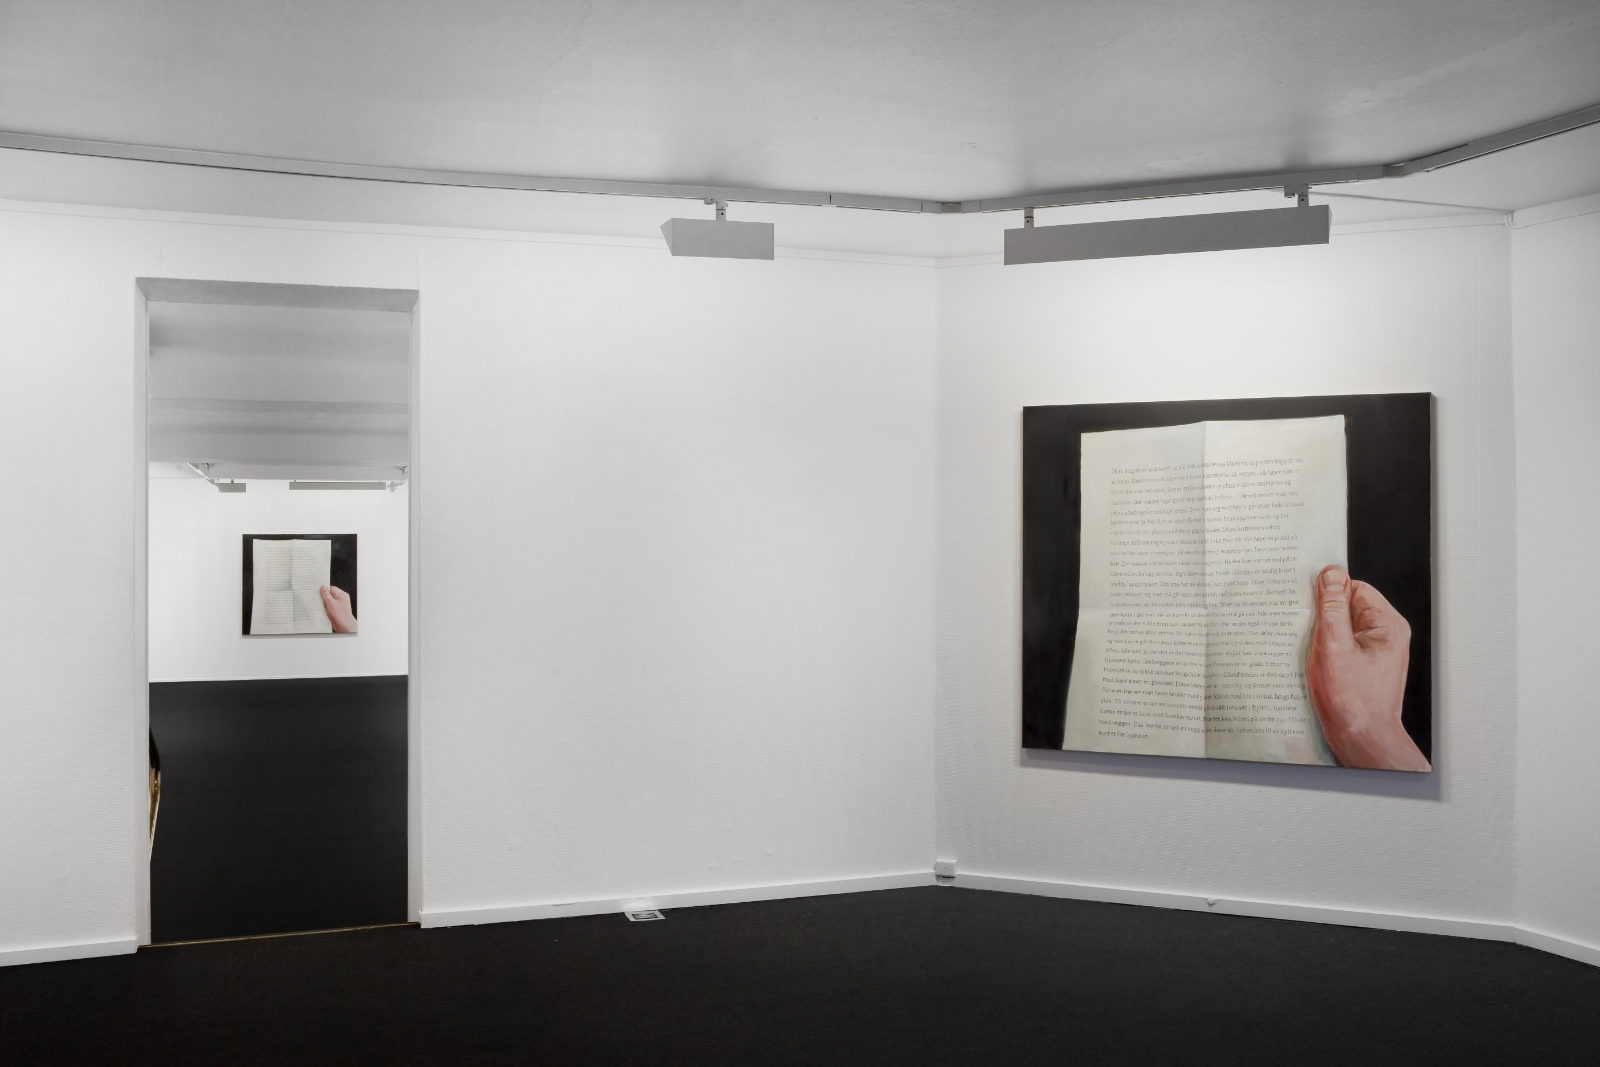 Thorbjørn Sørensen, Installation view 2013, Galleri K, Norway